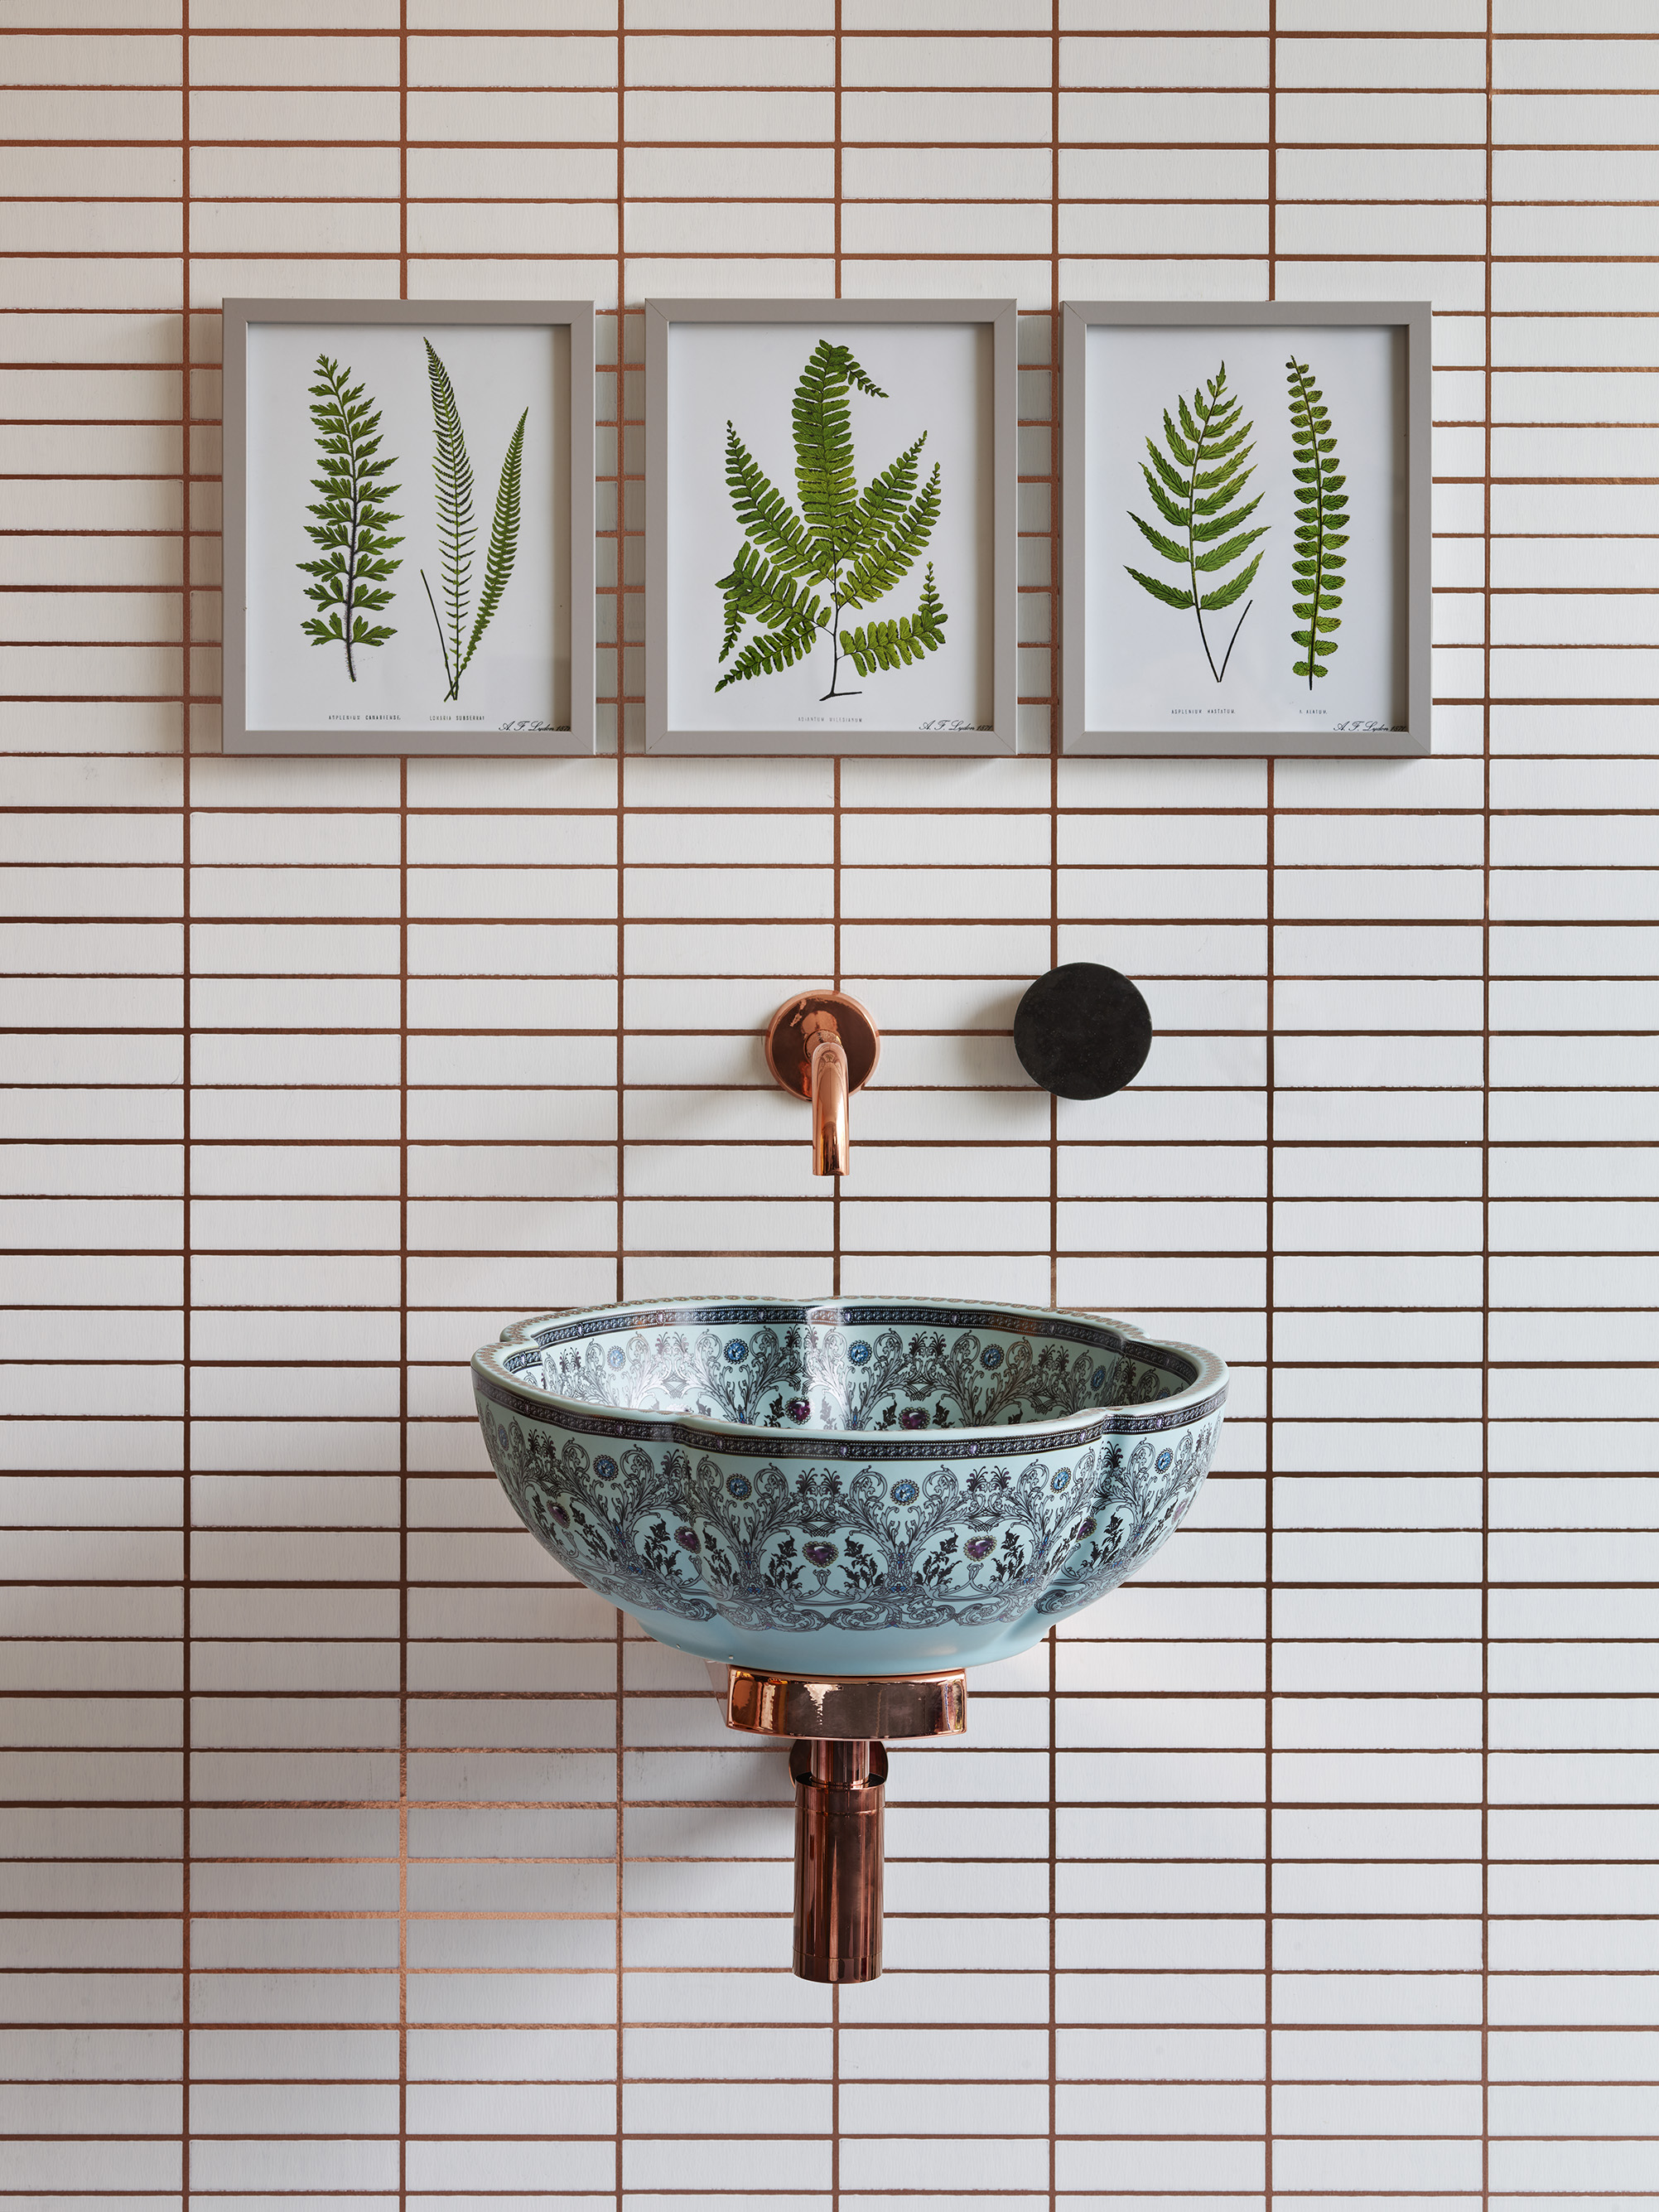 Welcome to the London Basin Company - Have a look around and discover how the London Basin Company can add a timeless twist to your bathroom interiors.Shop Now